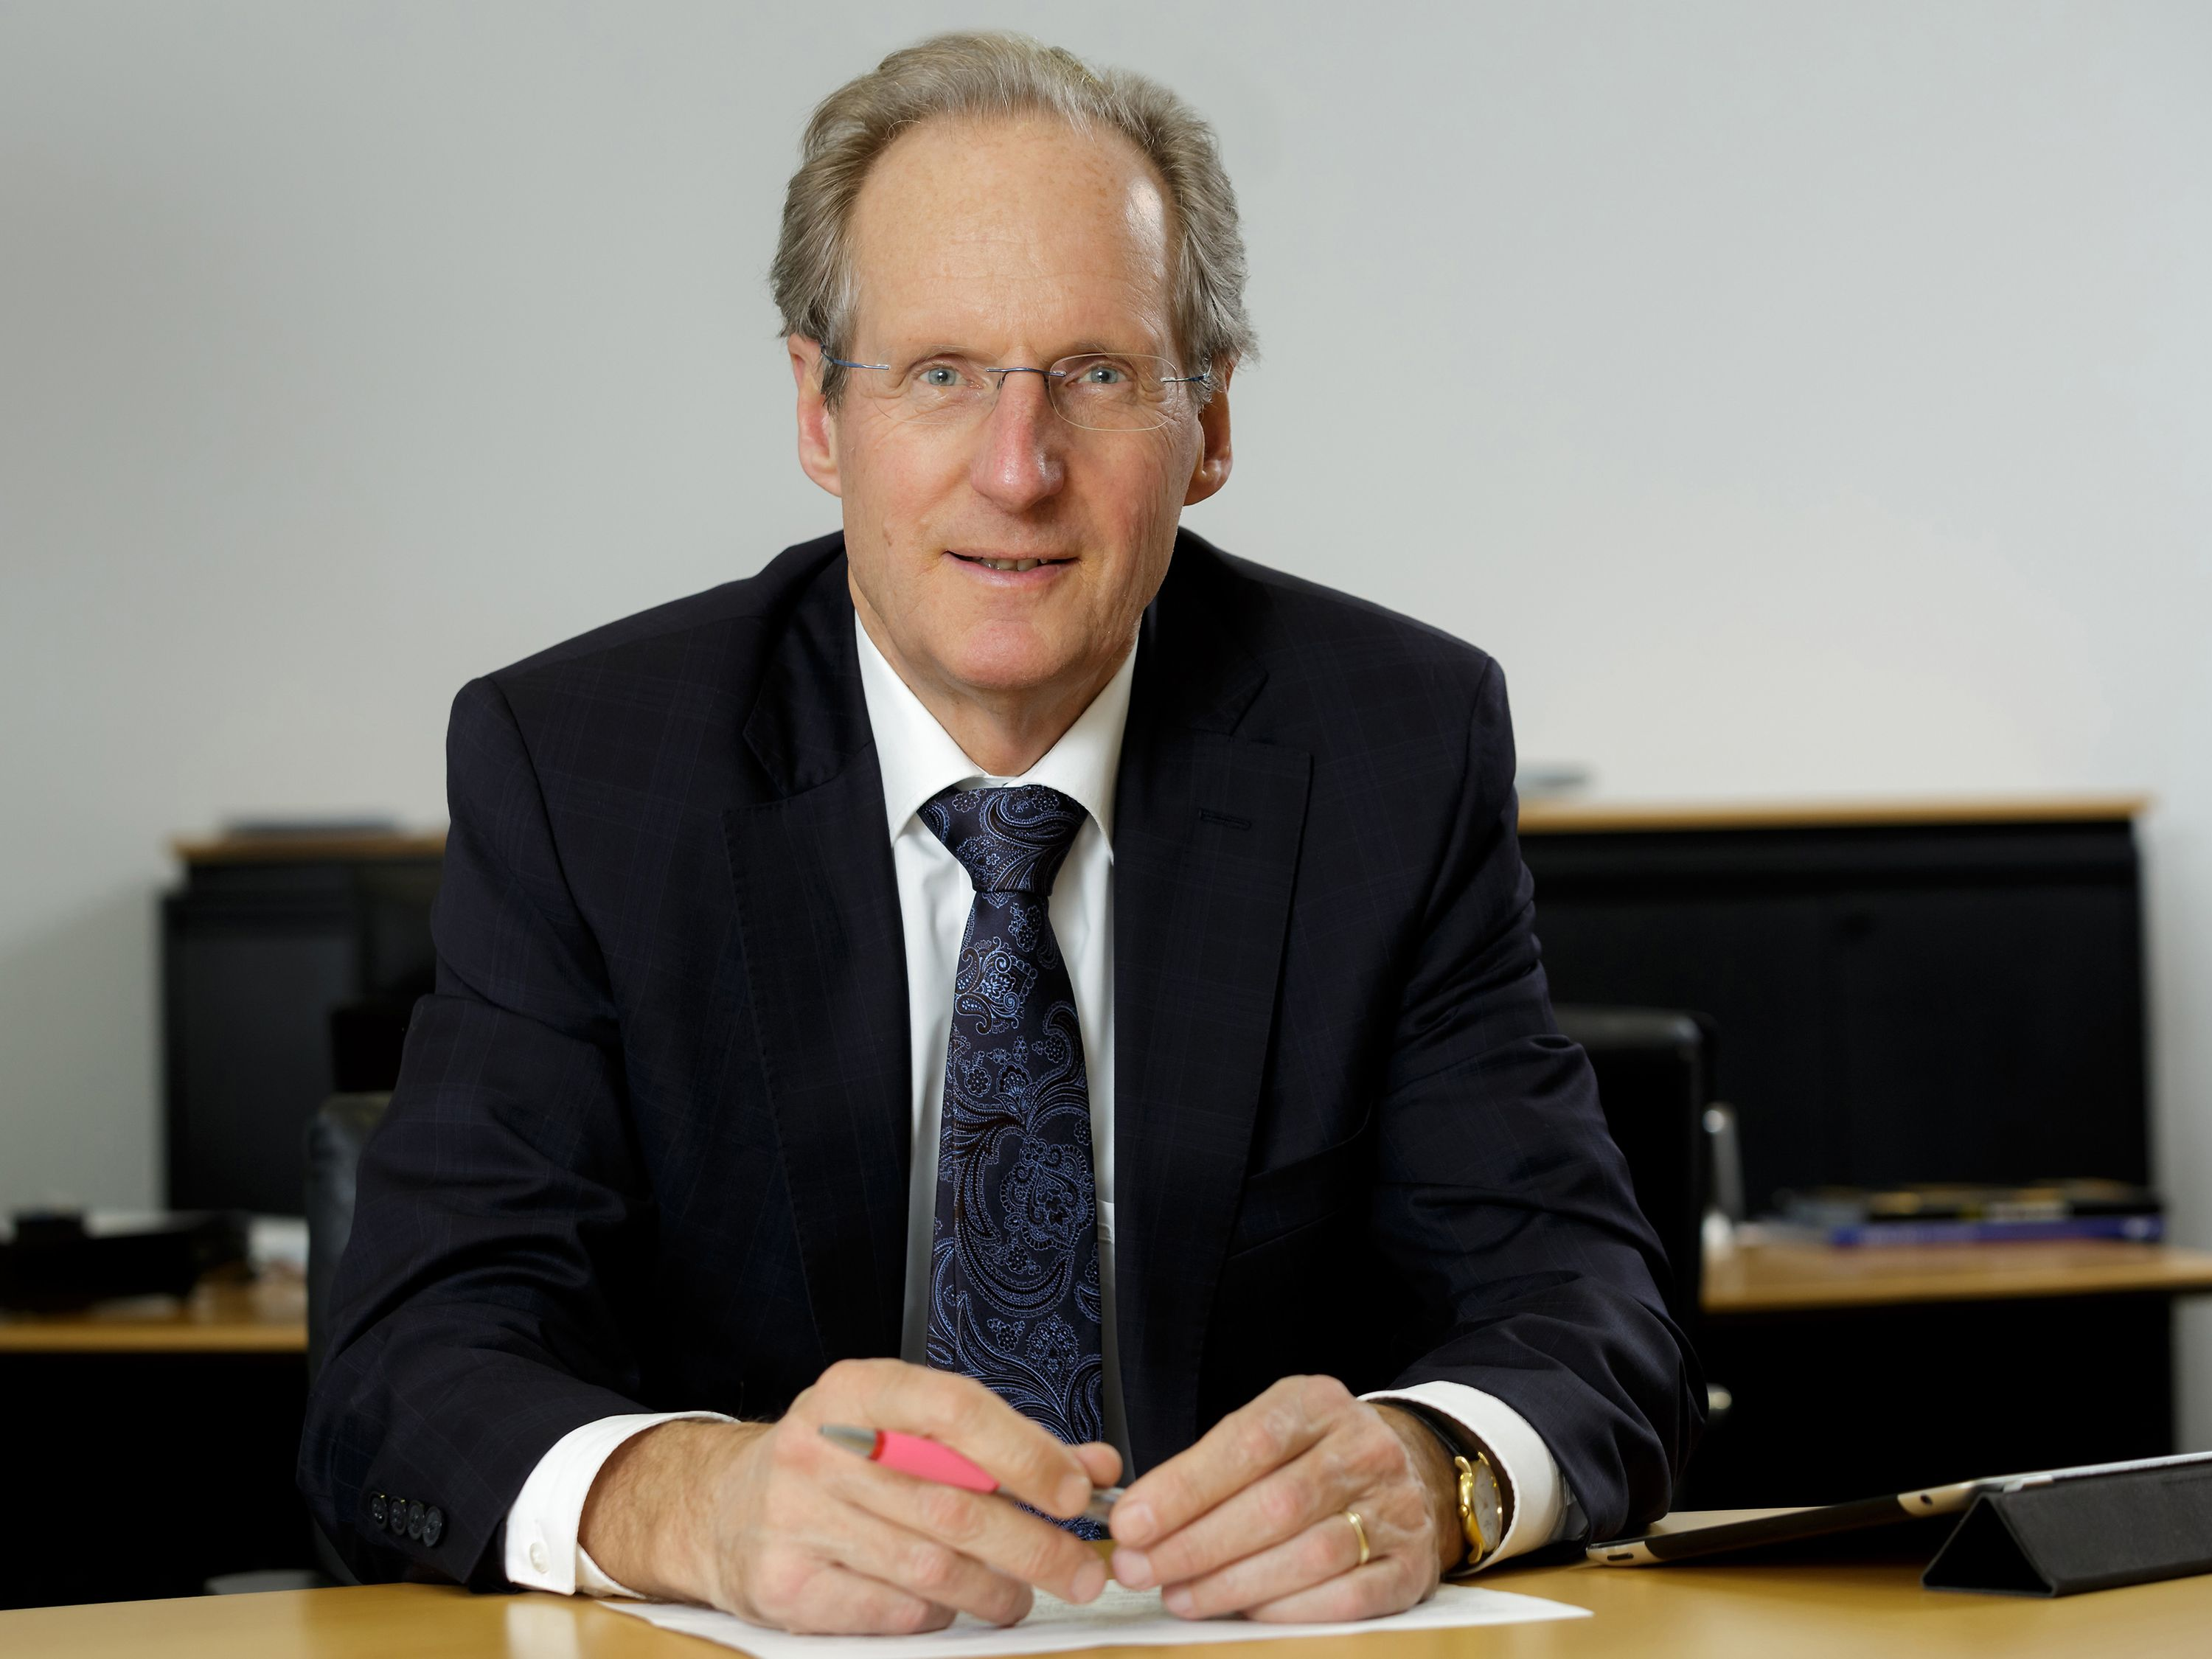 Prof. Wolfgang Schuster, Chair of the Deutsche Telekom Foundation